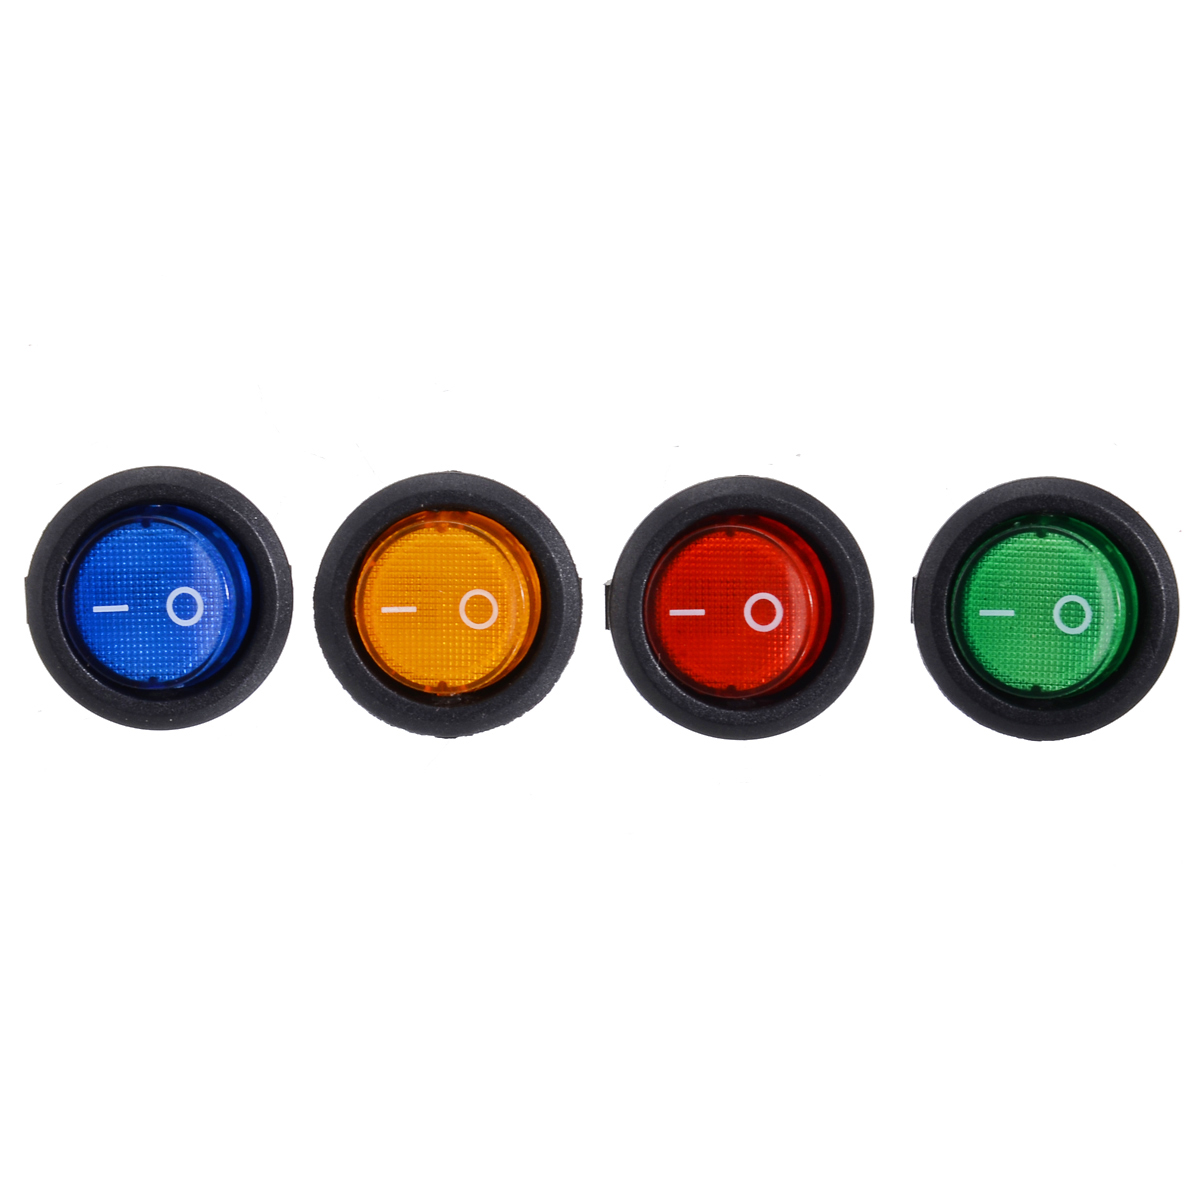 Image 4 - 4Pcs/Set 12V 16A LED Auto Rocker Dot Boat LED Light Toggle Switch Red/Blue/Green/Yellow SPST ON/OFF Top Sales Electric Controls-in Car Switches & Relays from Automobiles & Motorcycles